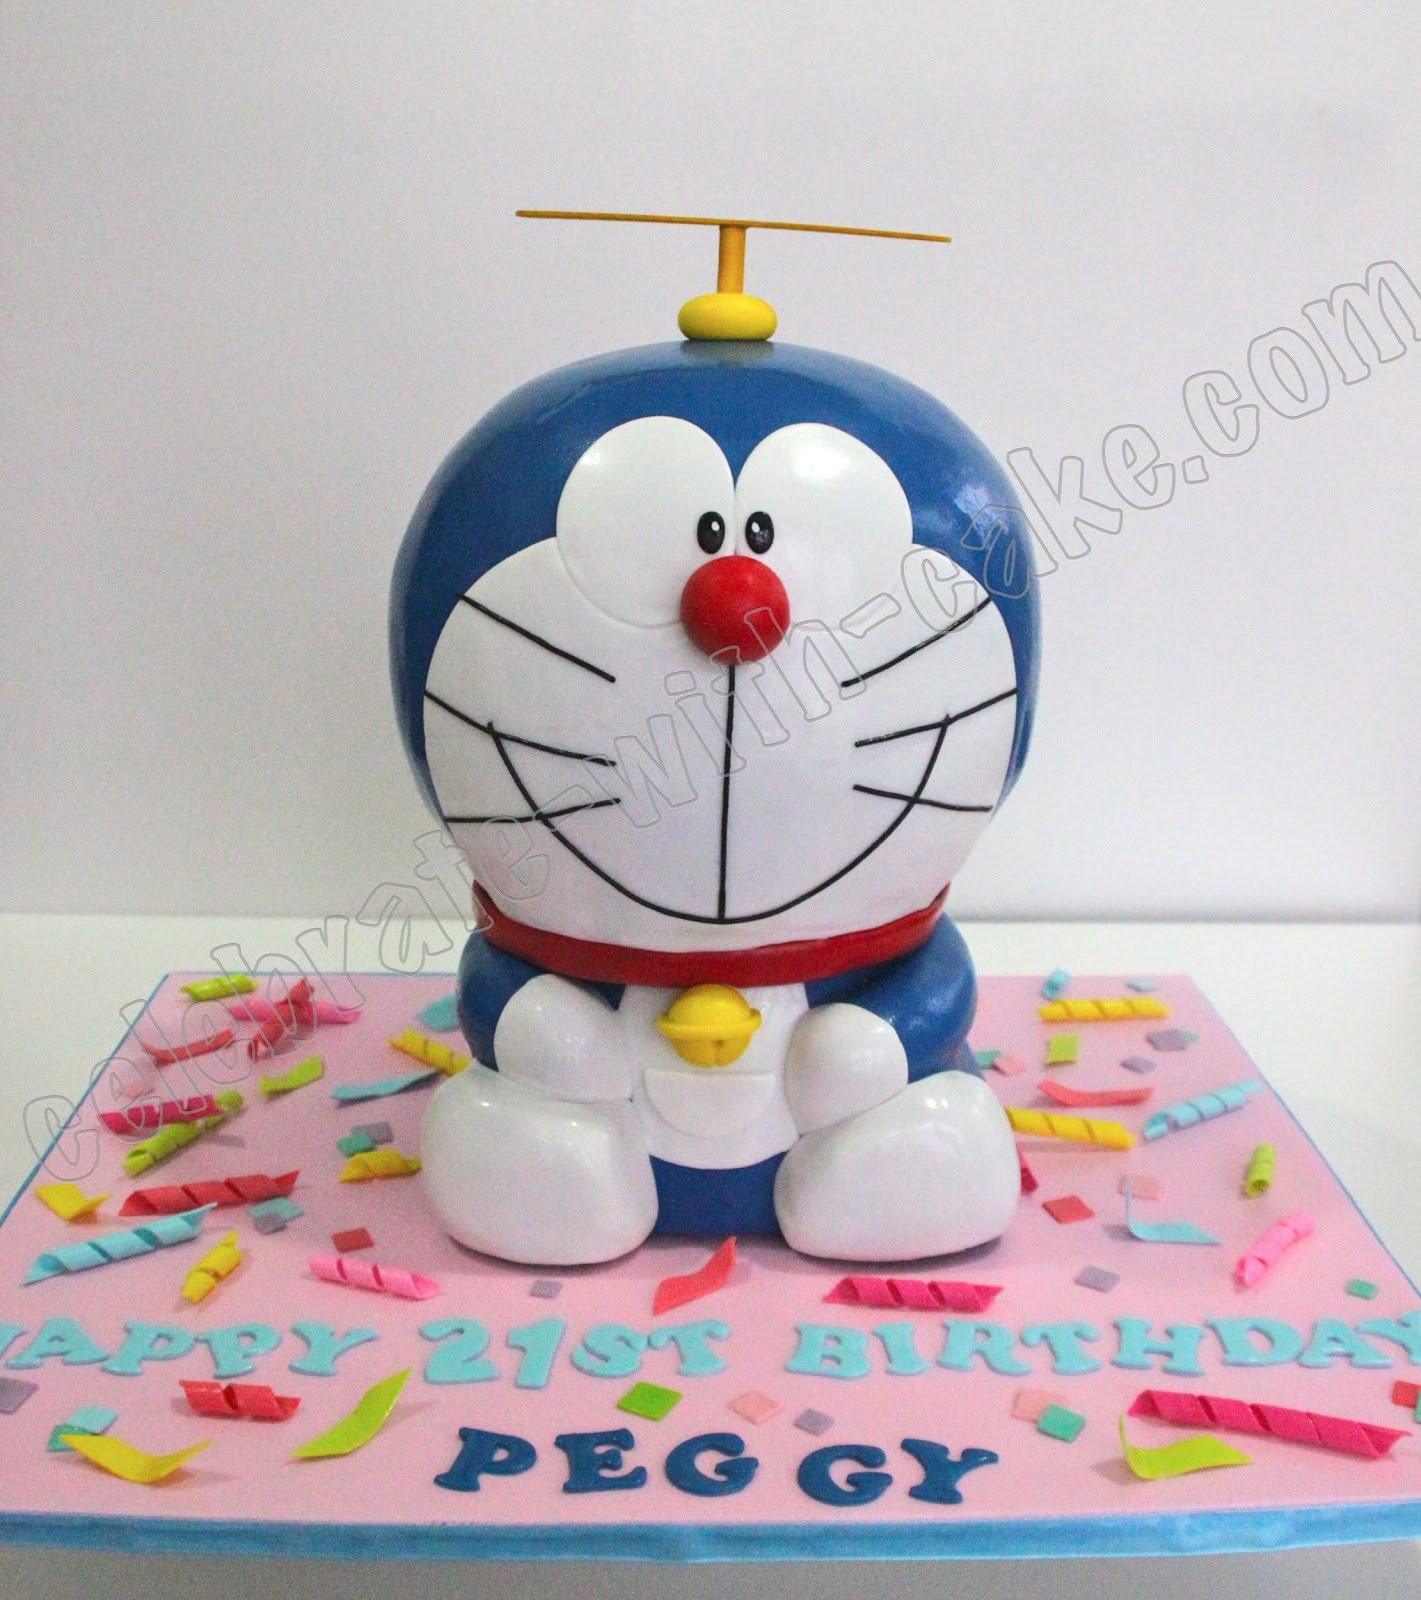 Doraemon Birthday Cake Images : Celebrate with Cake!: Sculpted Doraemon Cake